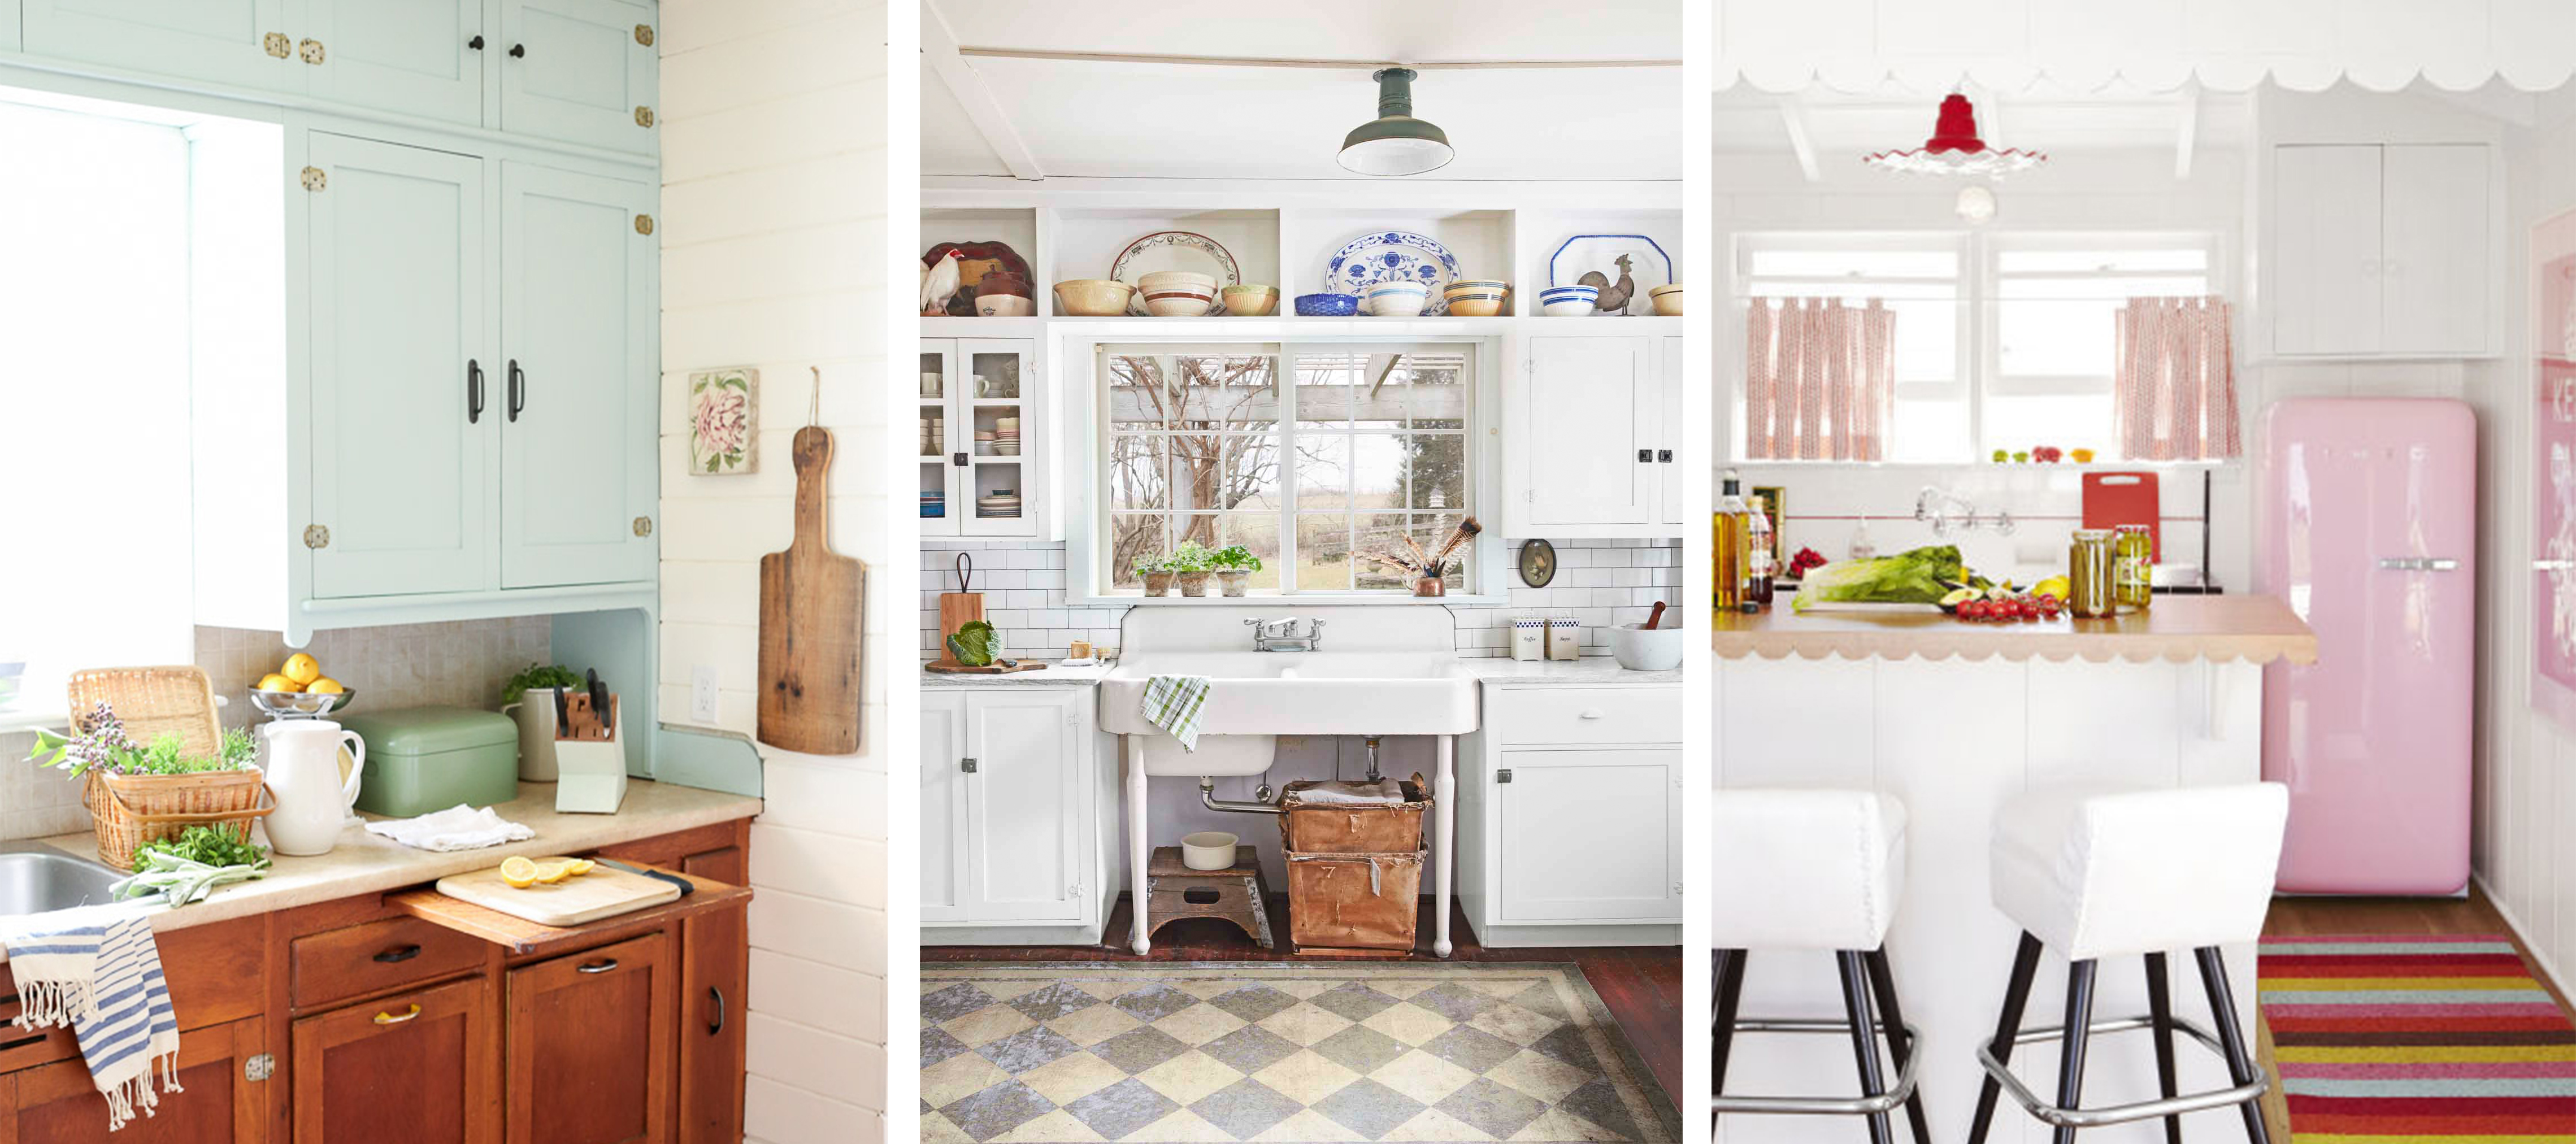 Kitchen Ideas: 20 Vintage Kitchen Decorating Ideas